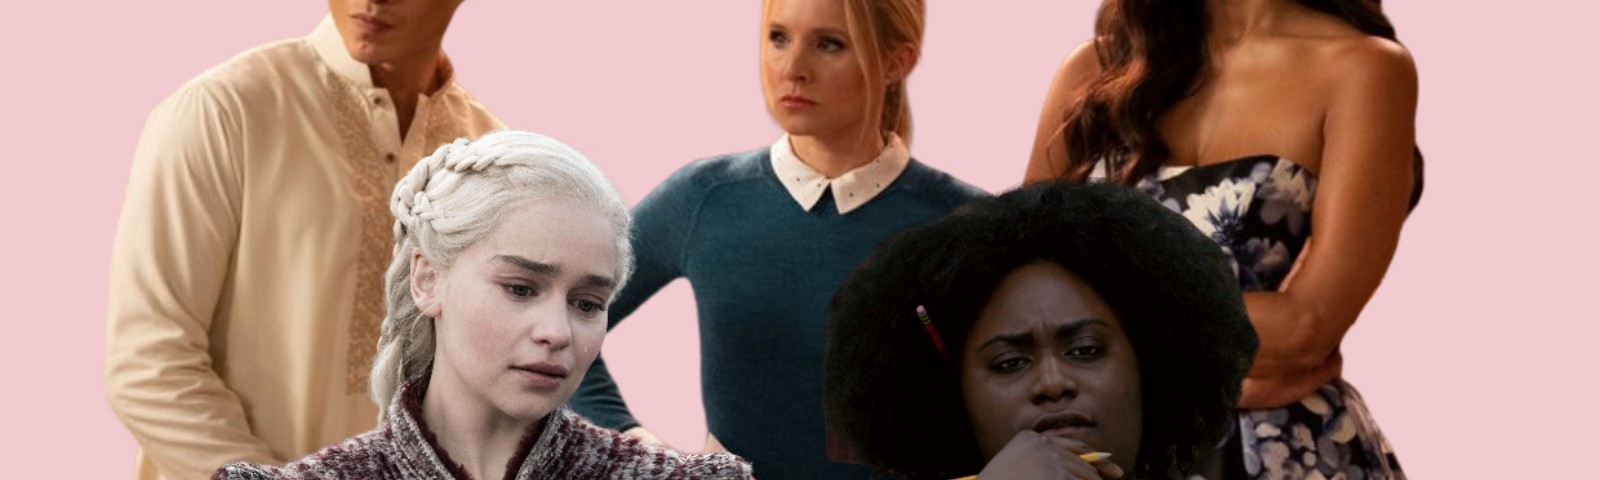 The Good Place, Game of Thrones, and Orange Is the New Black were among the very best TV shows of the 2010s decade…